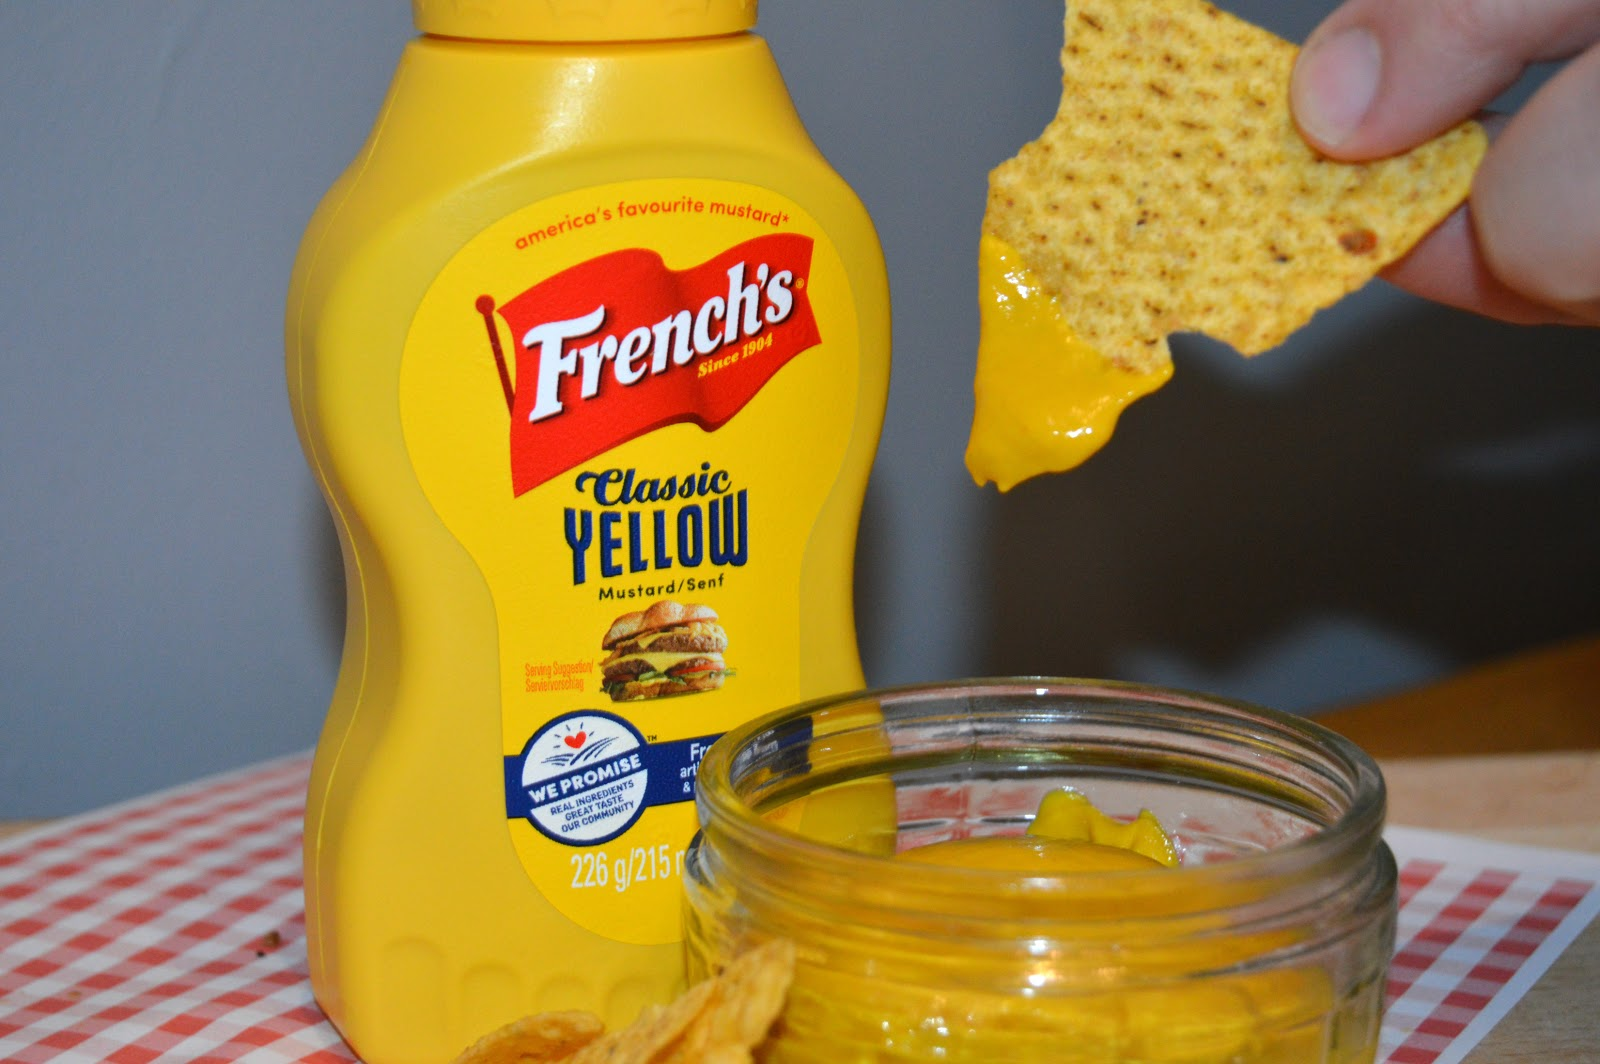 Making a Club Sandwich and French's Mustard